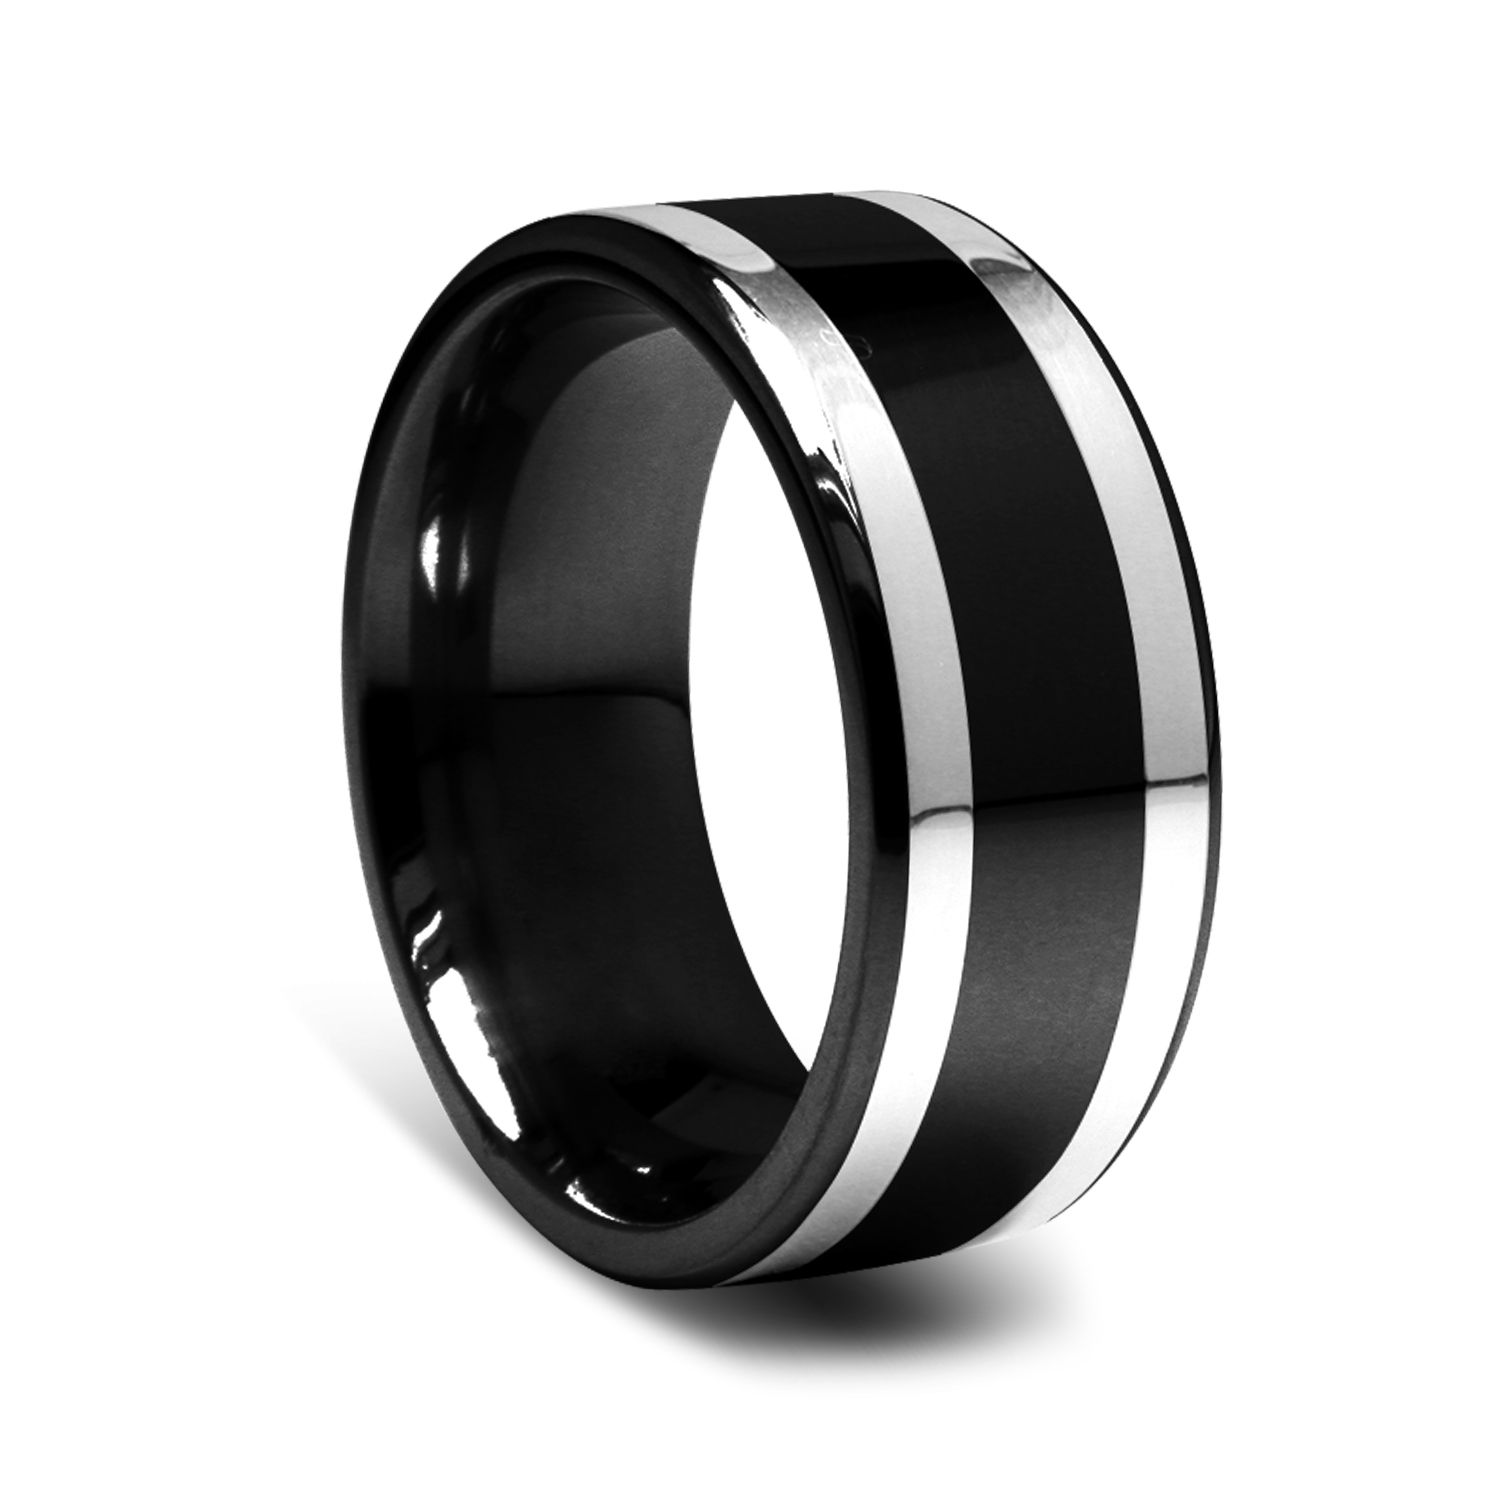 black mens wedding rings 9mm Black Titanium Men s Ring with Silver Inlay A great look sleek and modern